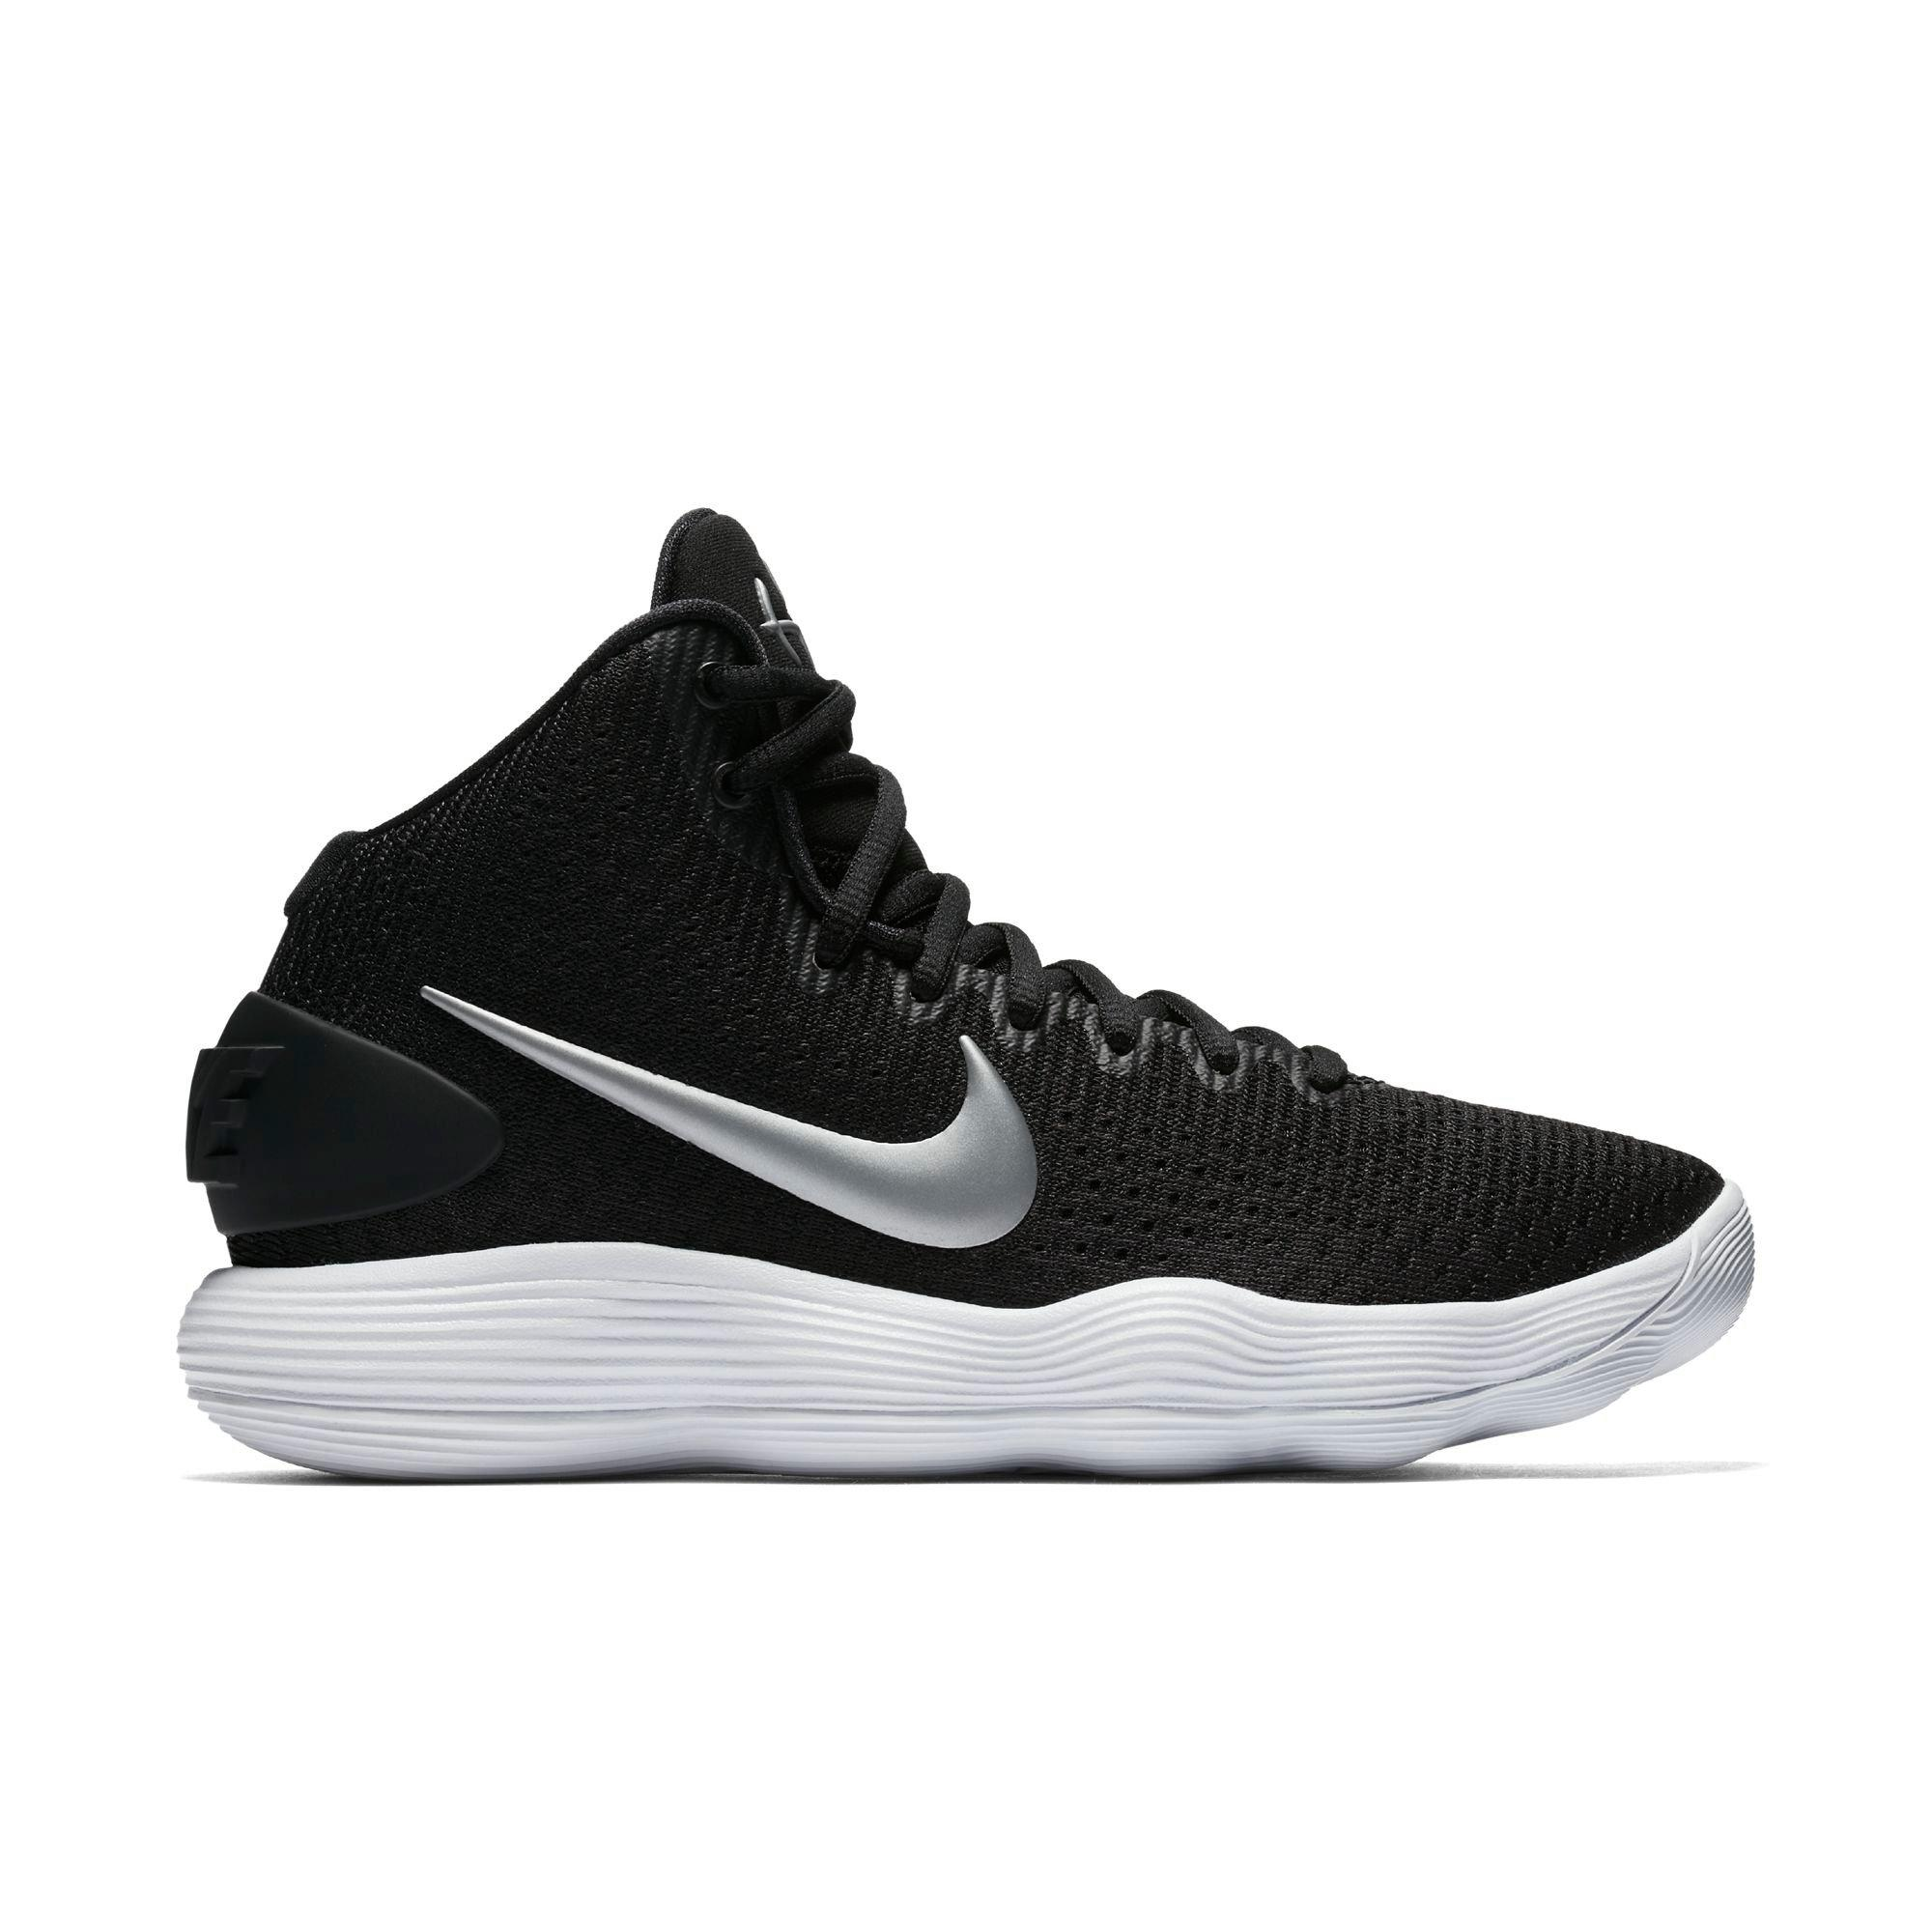 womens nike hyperdunk basketball shoes popular nike hyperdunk 2017 tb basketball shoes